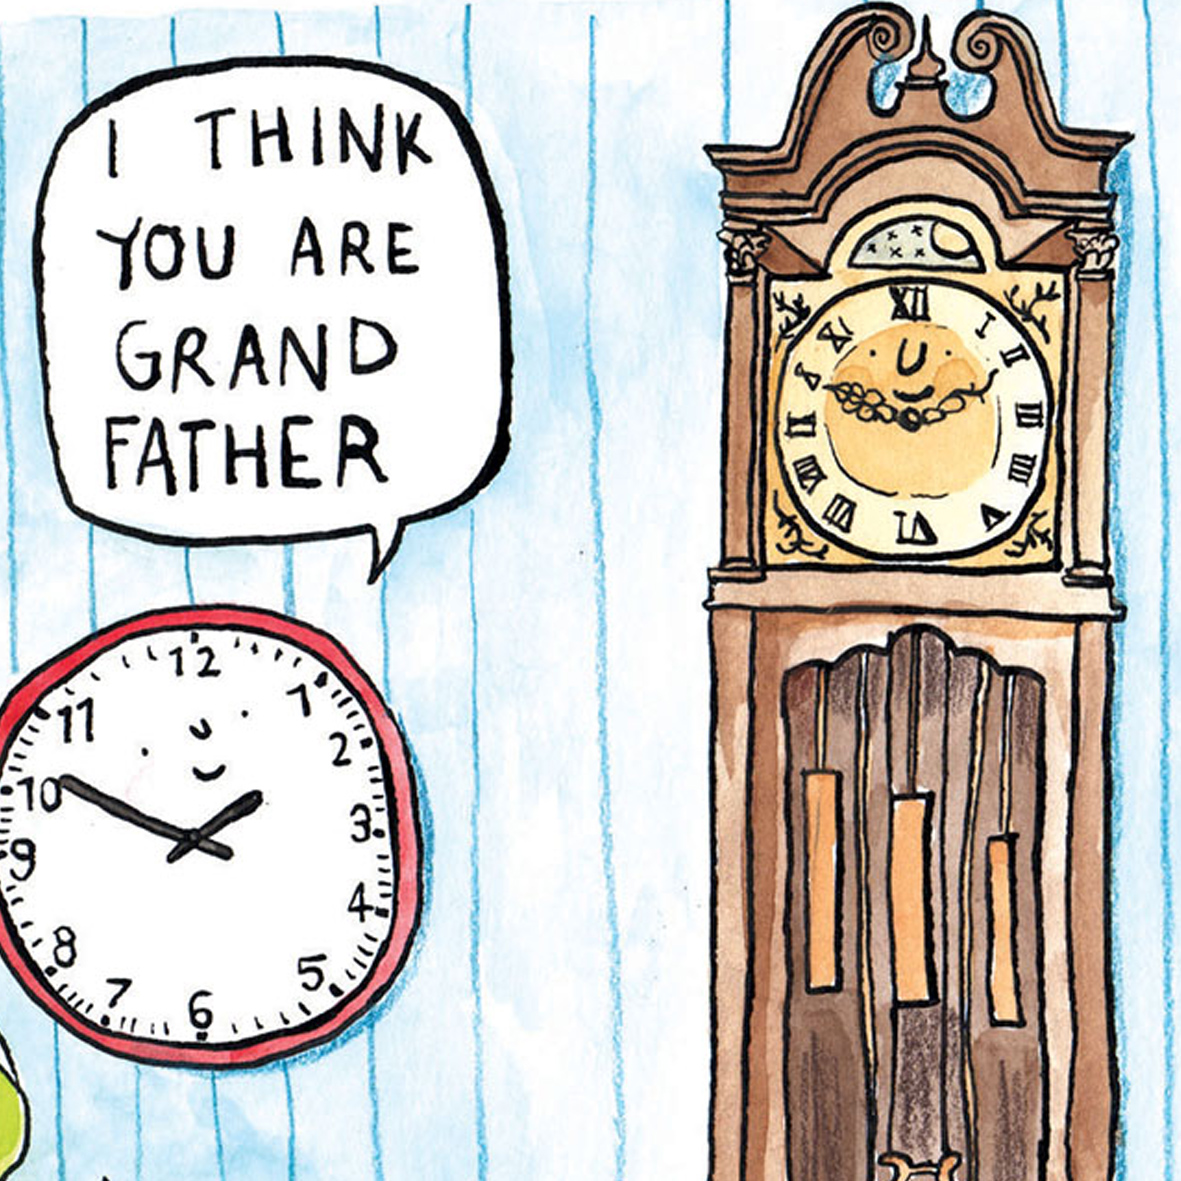 Youre-Grand-Father_-Fathers-Day-Cards-for-grandfathers-and-grandads_FD11_CU